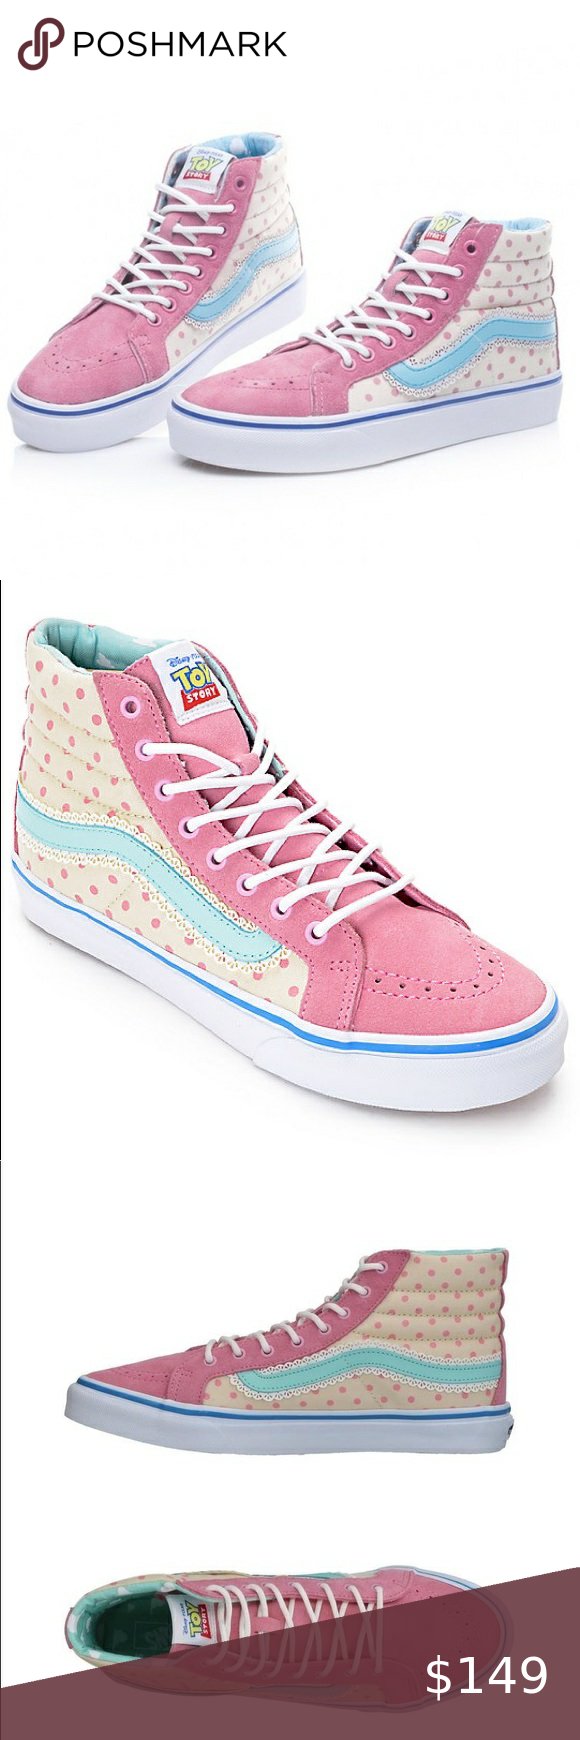 Limited Edition Toy Story Bo Peep Vans